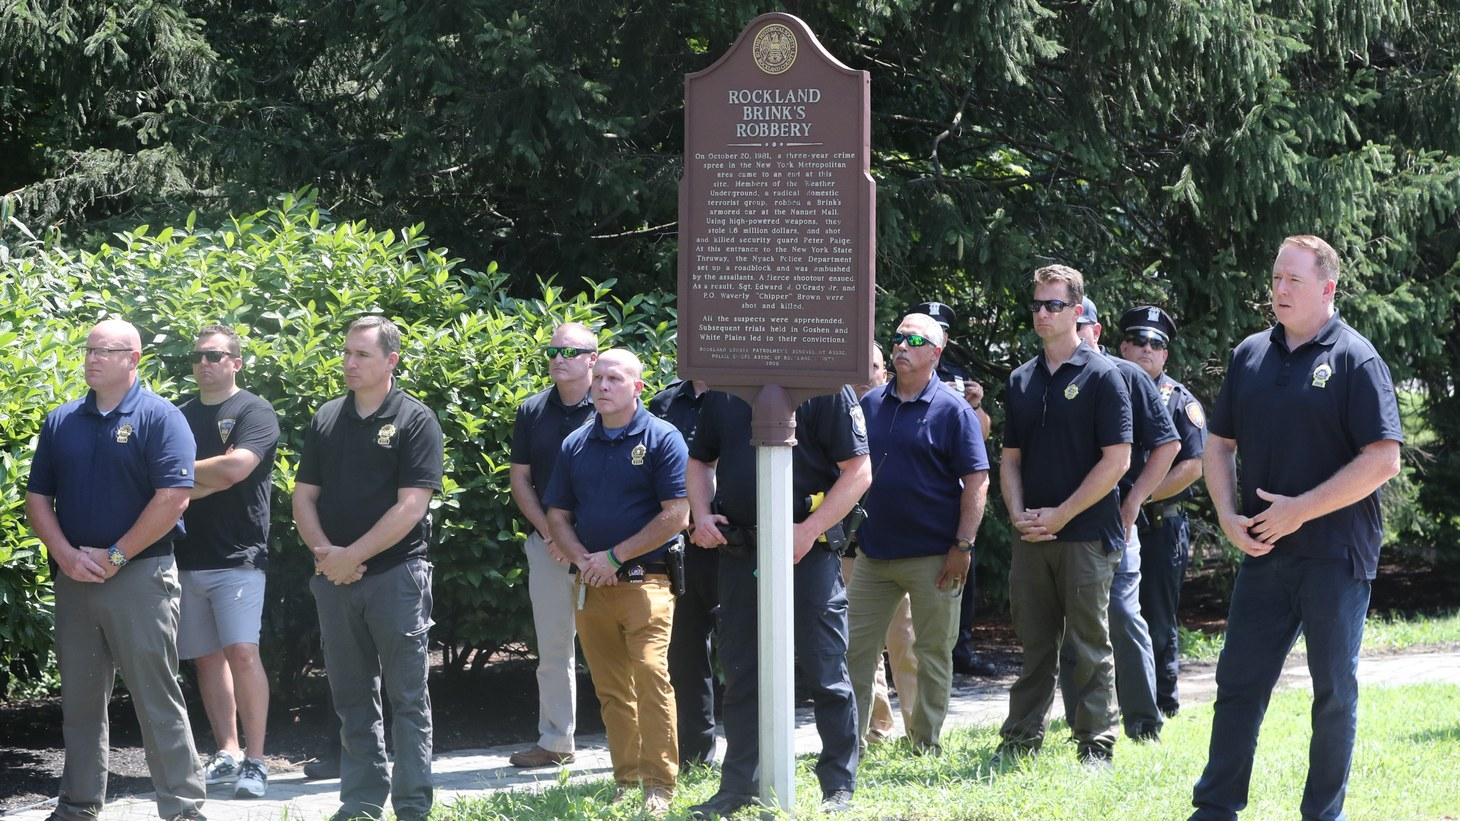 Members of the Rockland County PBA are at the Brinks Robbery Memorial during a press conference about Governor Cuomo commuting the prison sentence of David Gilbert, and making him eligible for early release by a parole board, Aug. 24, 2021.